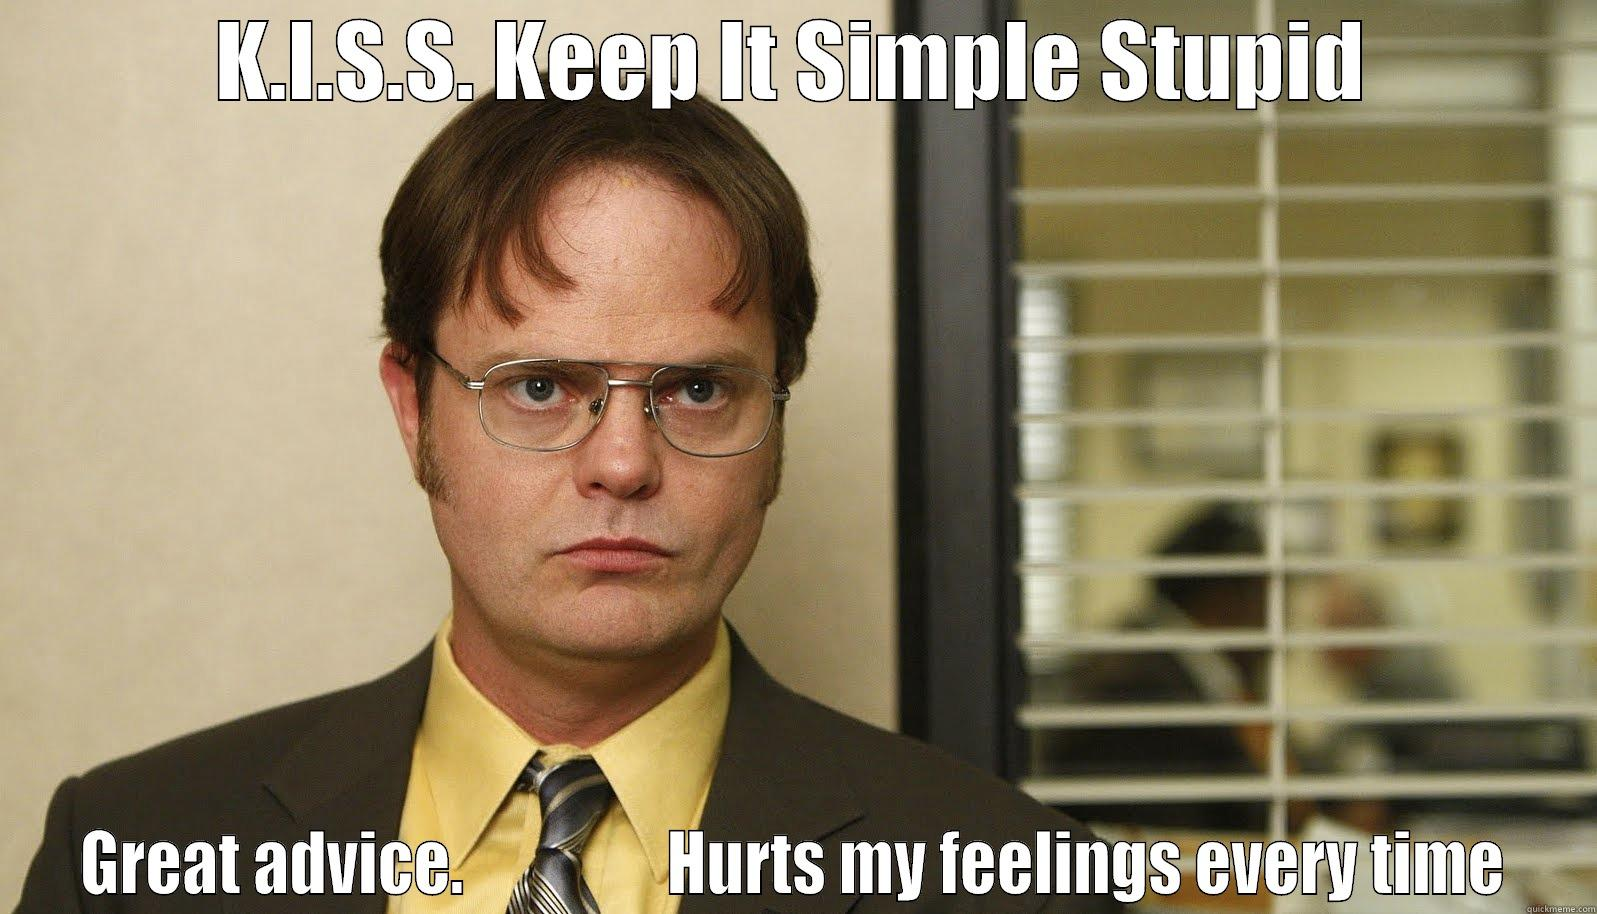 """Michael always says """"K-I-S-S. Keep it simple, stupid."""" Great advice. Hurts my feelings every time."""